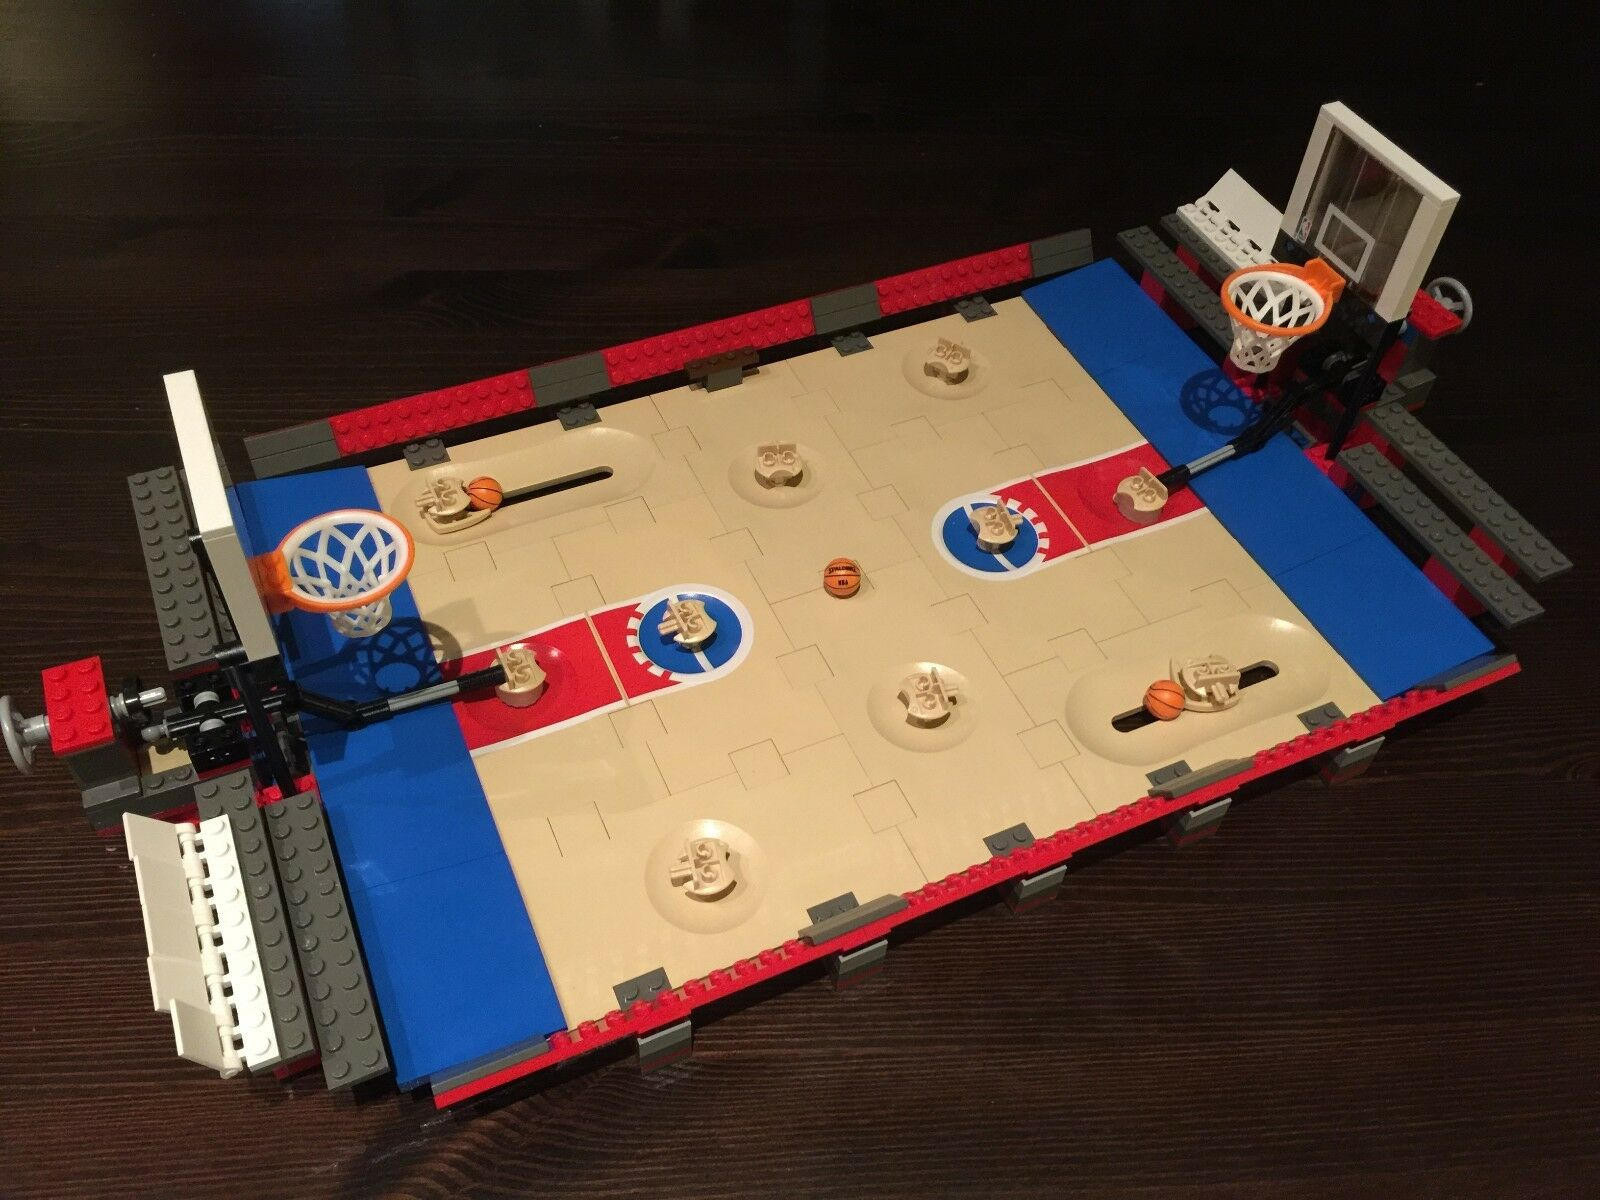 Used  LEGO SPORTS 3432 NBA Chtuttienge Basketbtutti COURT ONLY NO minicifras 2003  salutare